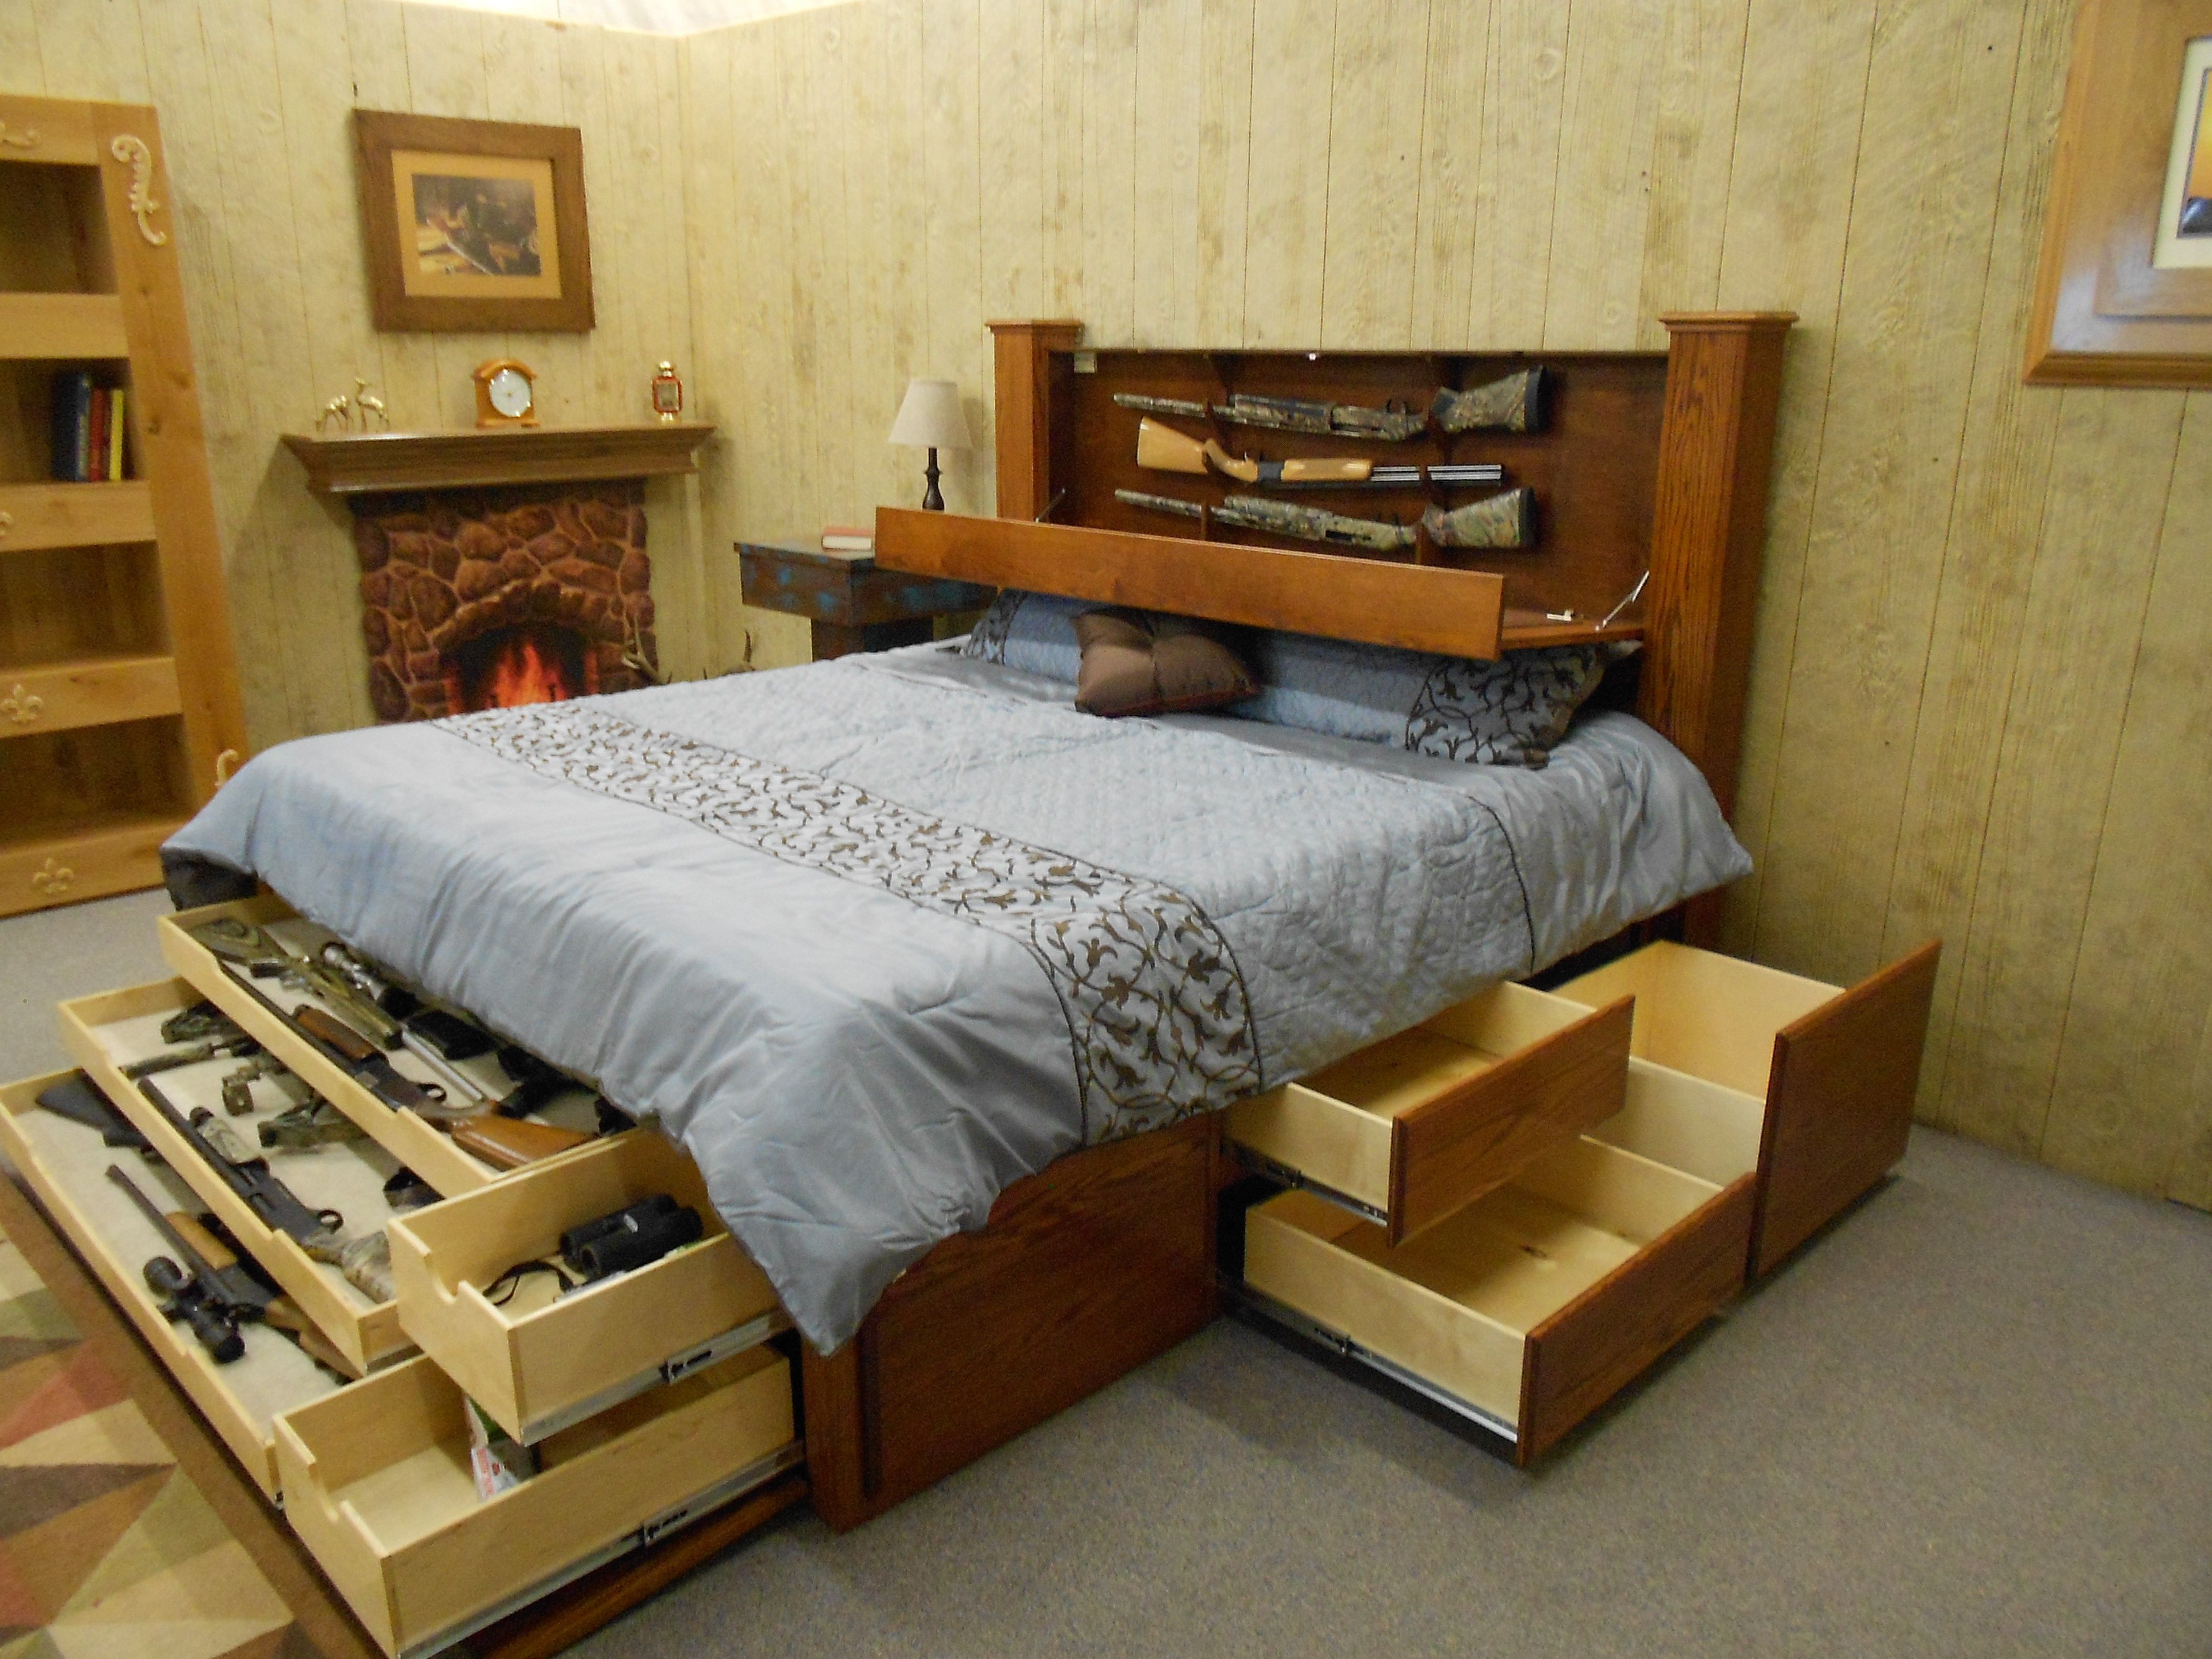 King Size Bed Size King Size Platform Bed With Storage And Bookcase Headboard